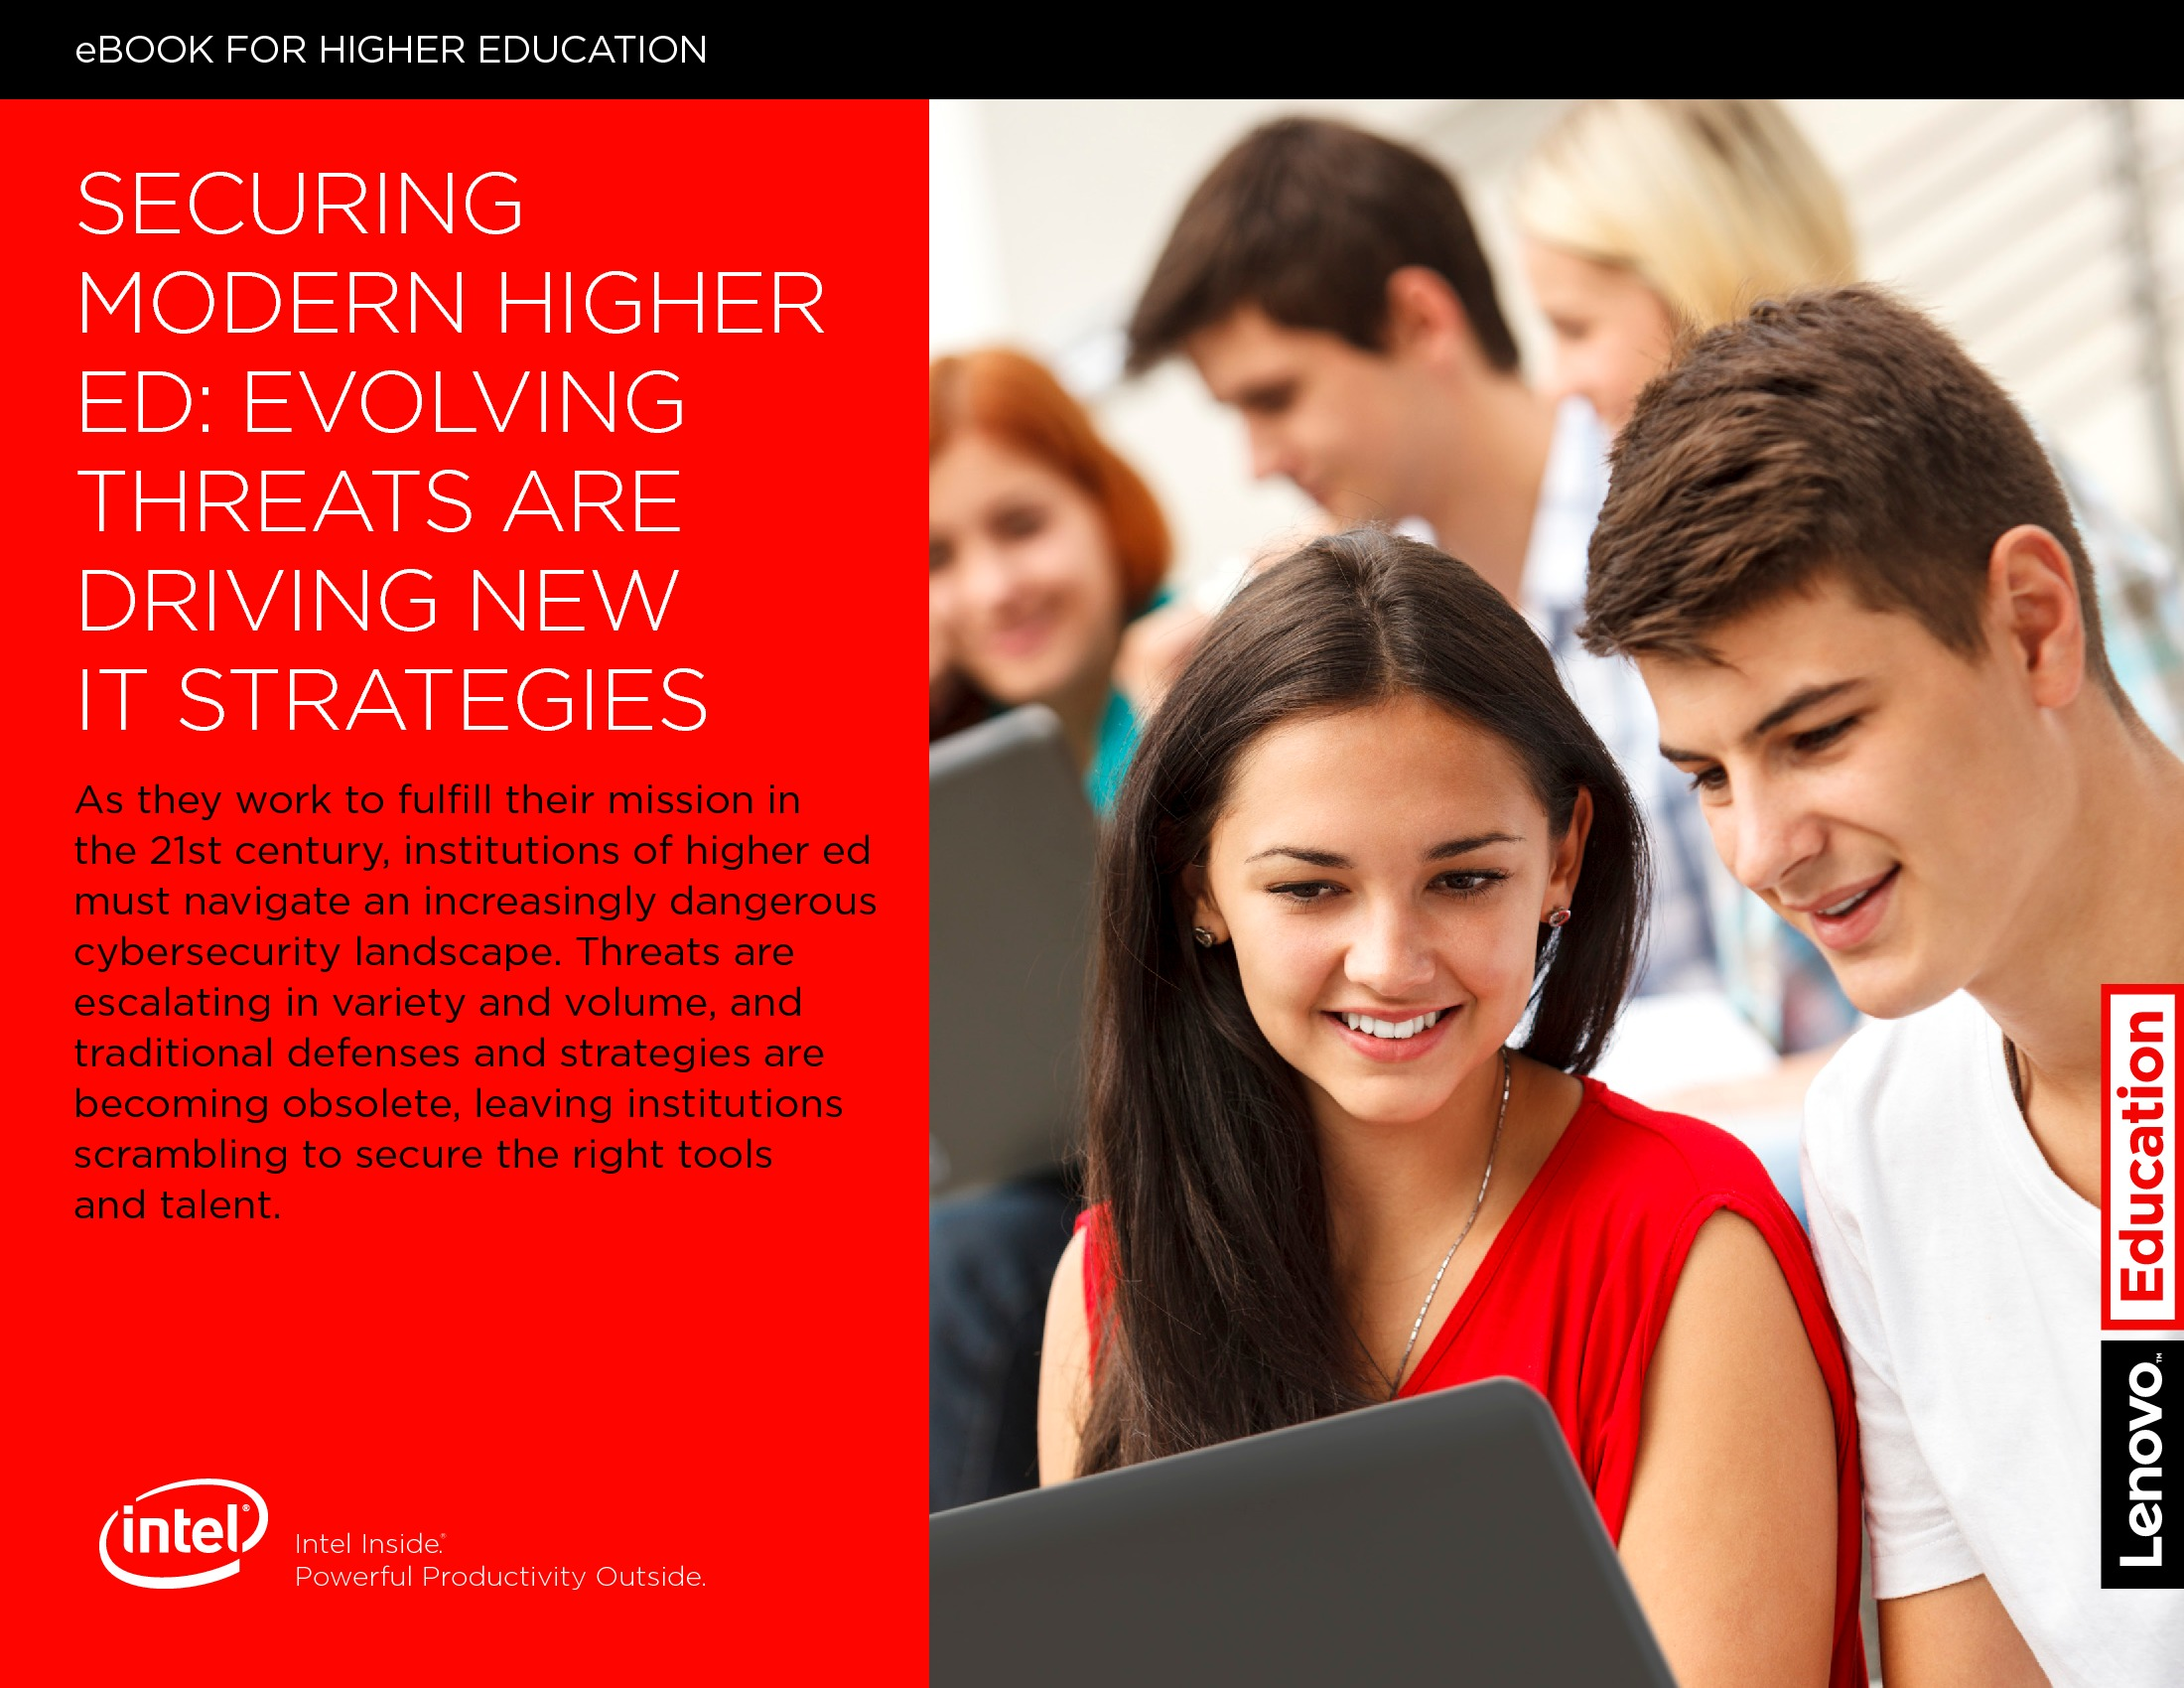 Modern Higher Ed: Evolving Threats Are Driving New IT Strategies